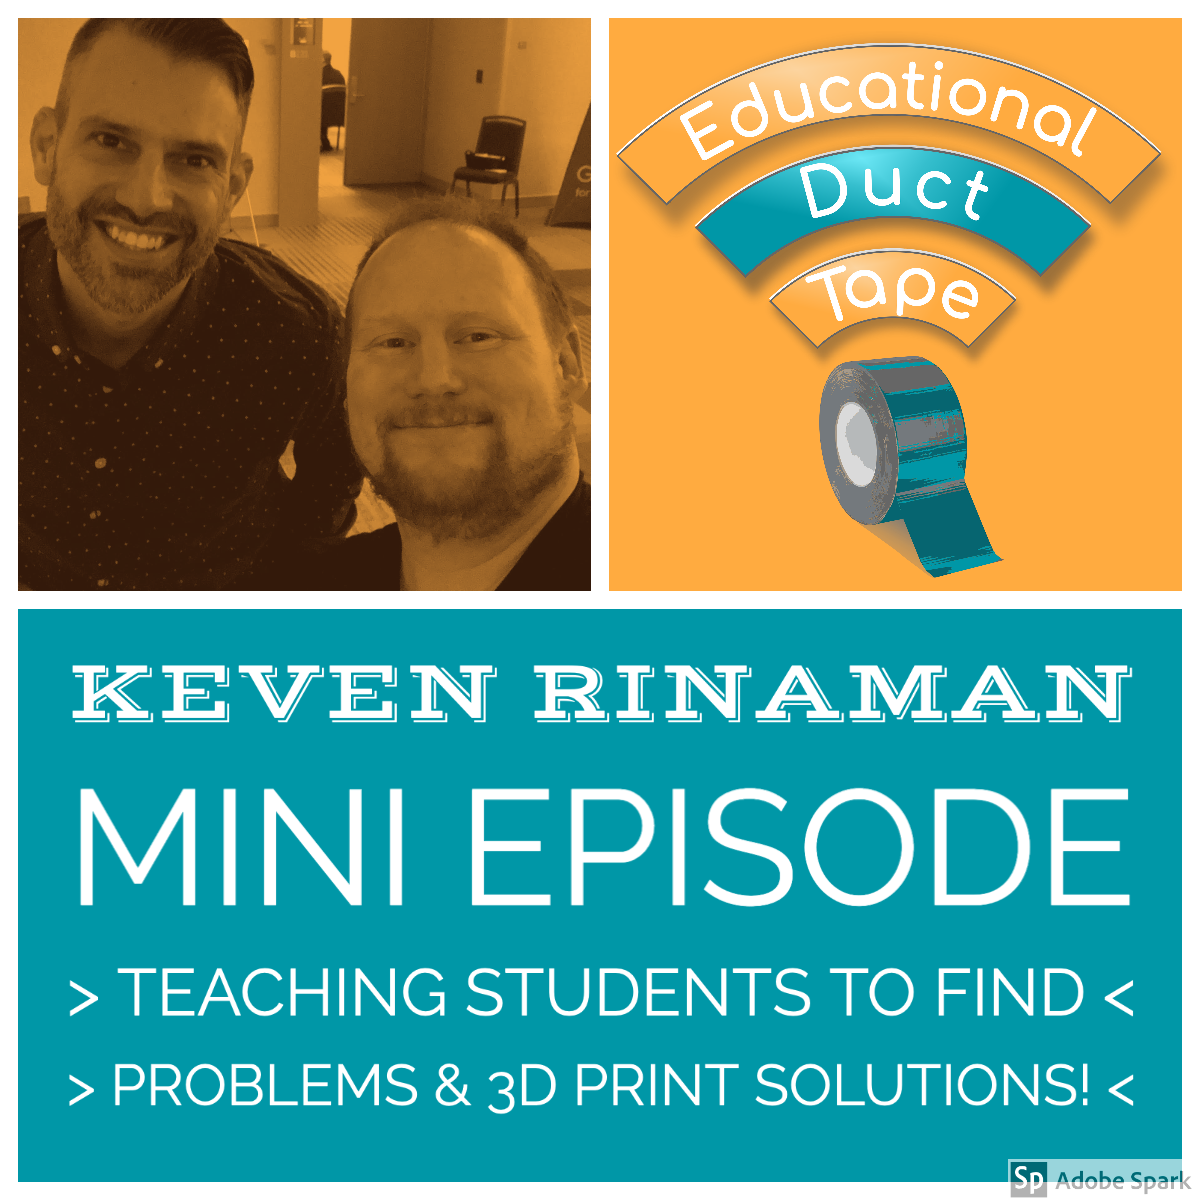 Episode Cover Artwork, shows a picture of Jake and episode guest Keven Rinaman along with the caption Mini Episode: Teaching students to find Problems and 3D Print solutions!